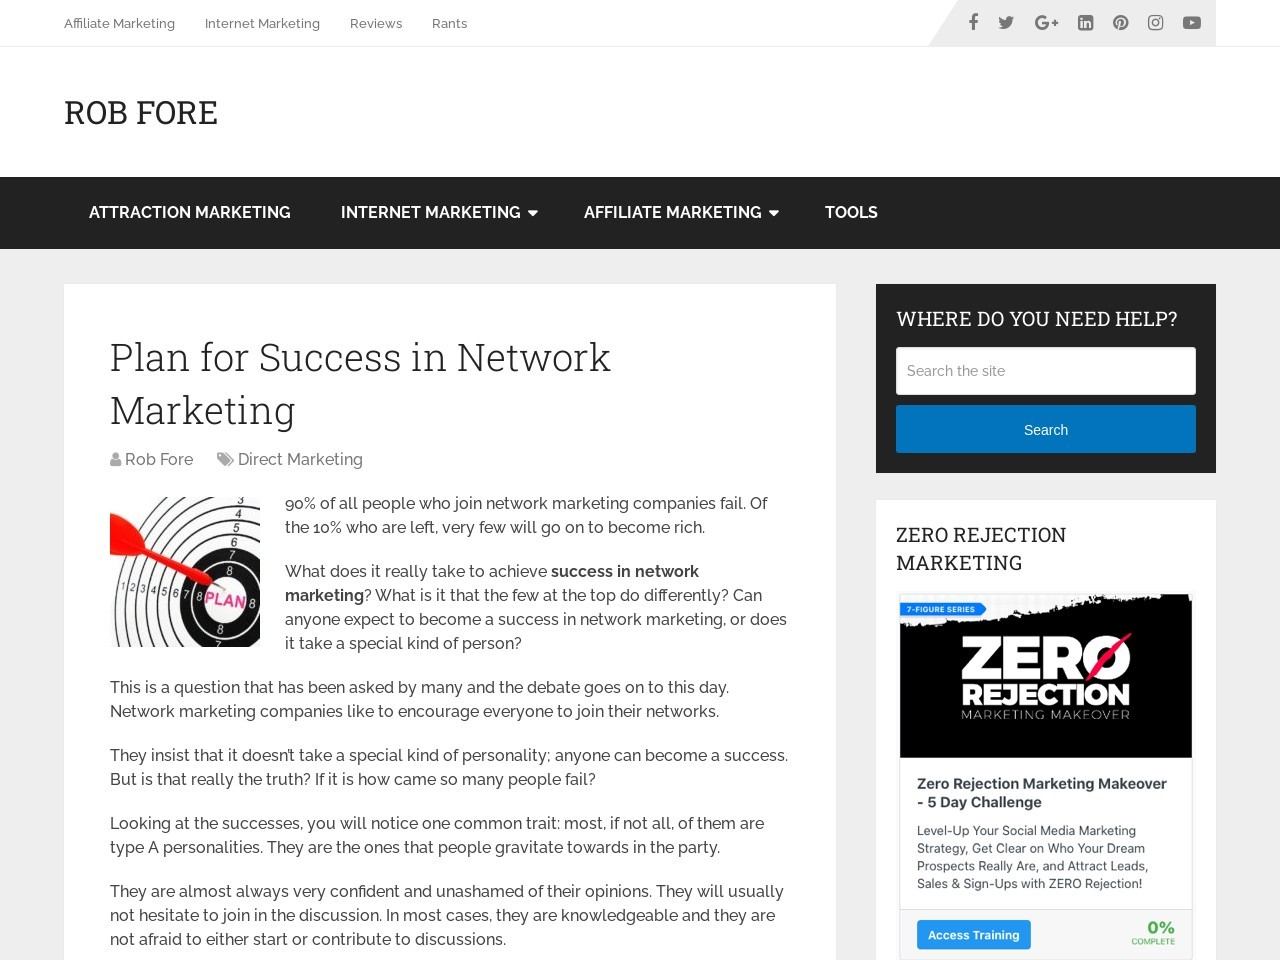 Plan for Success in Network Marketing